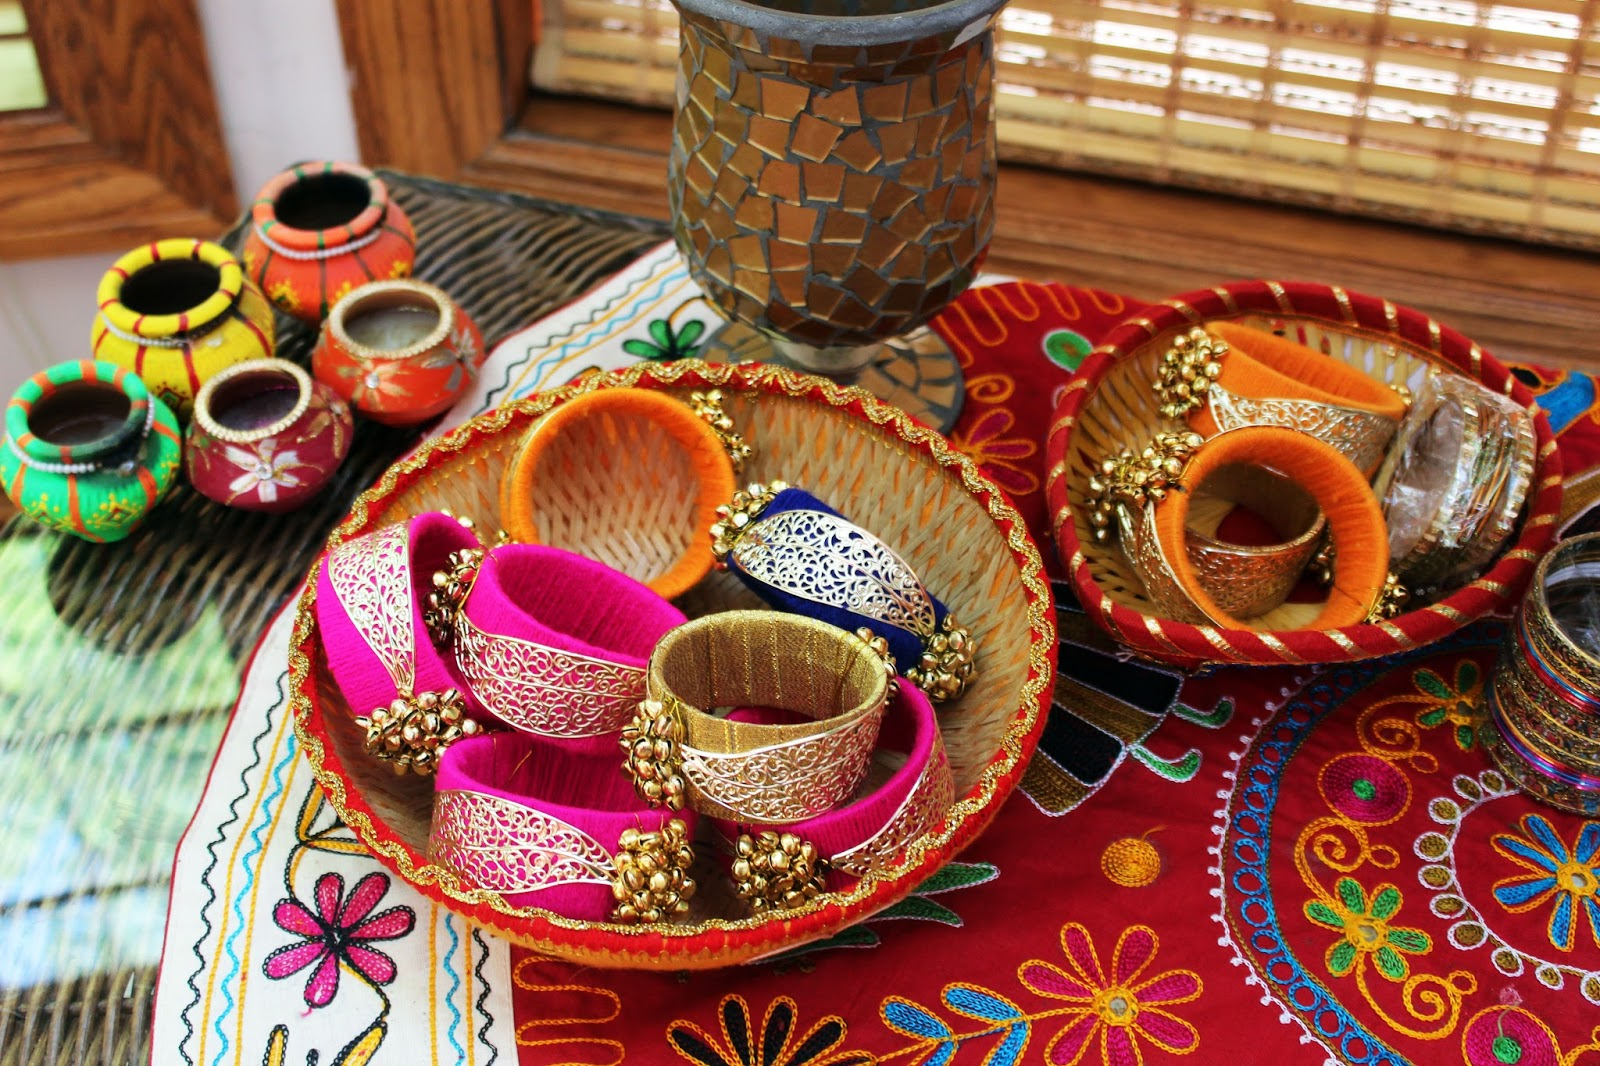 Henna Was Regarded As Having Barakah Blessings And Applied For Luck Well Joy Beauty Before The Wedding Day